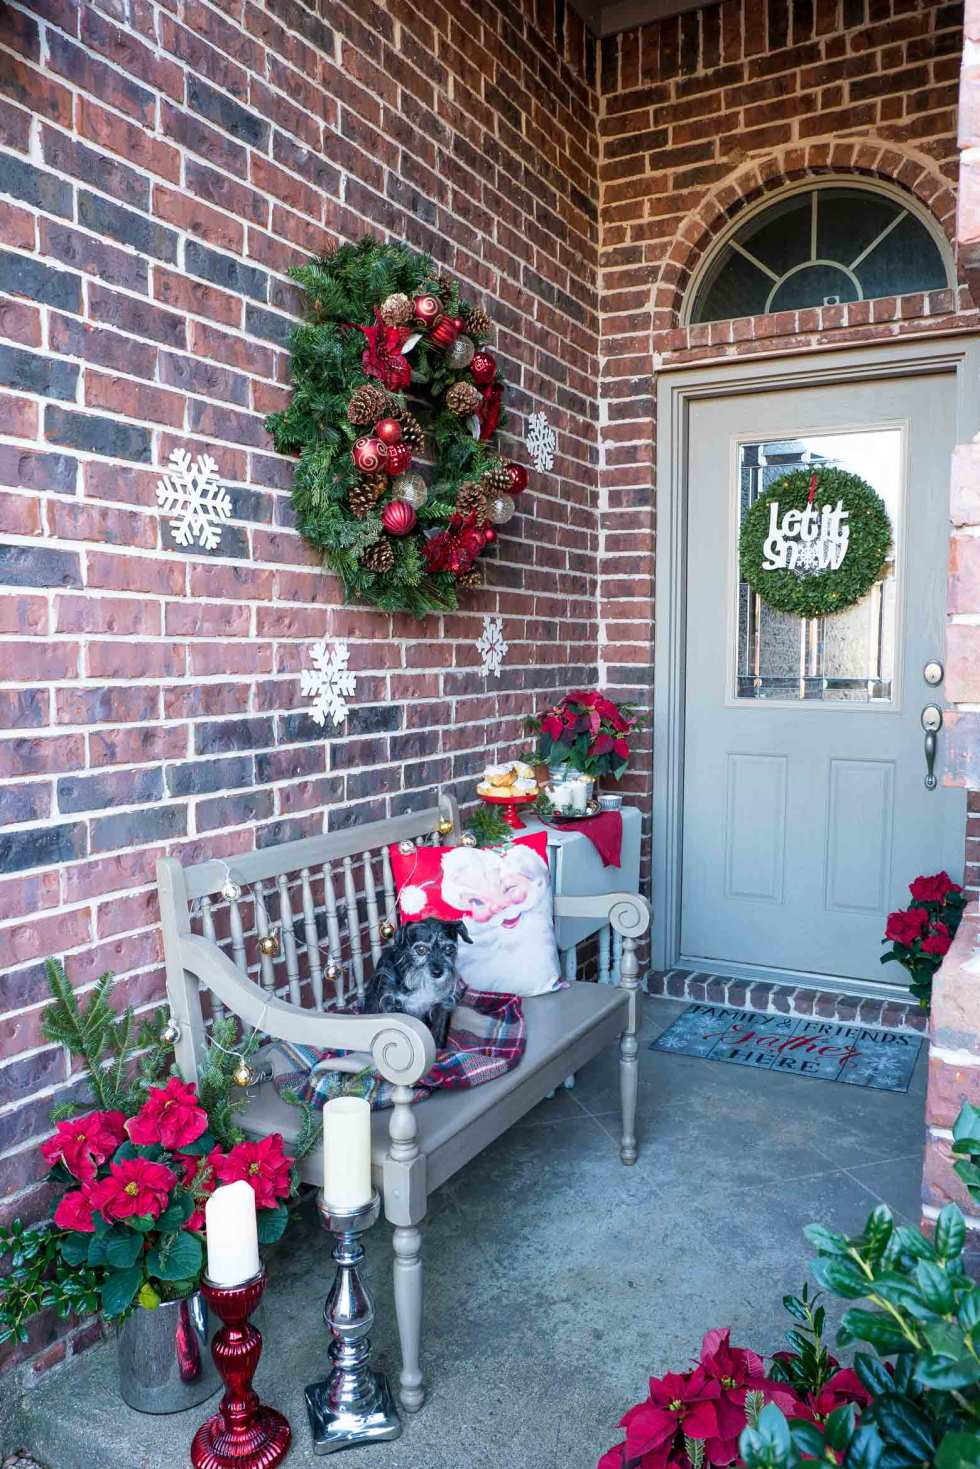 Christmas decor on front porch with a dog on a bench